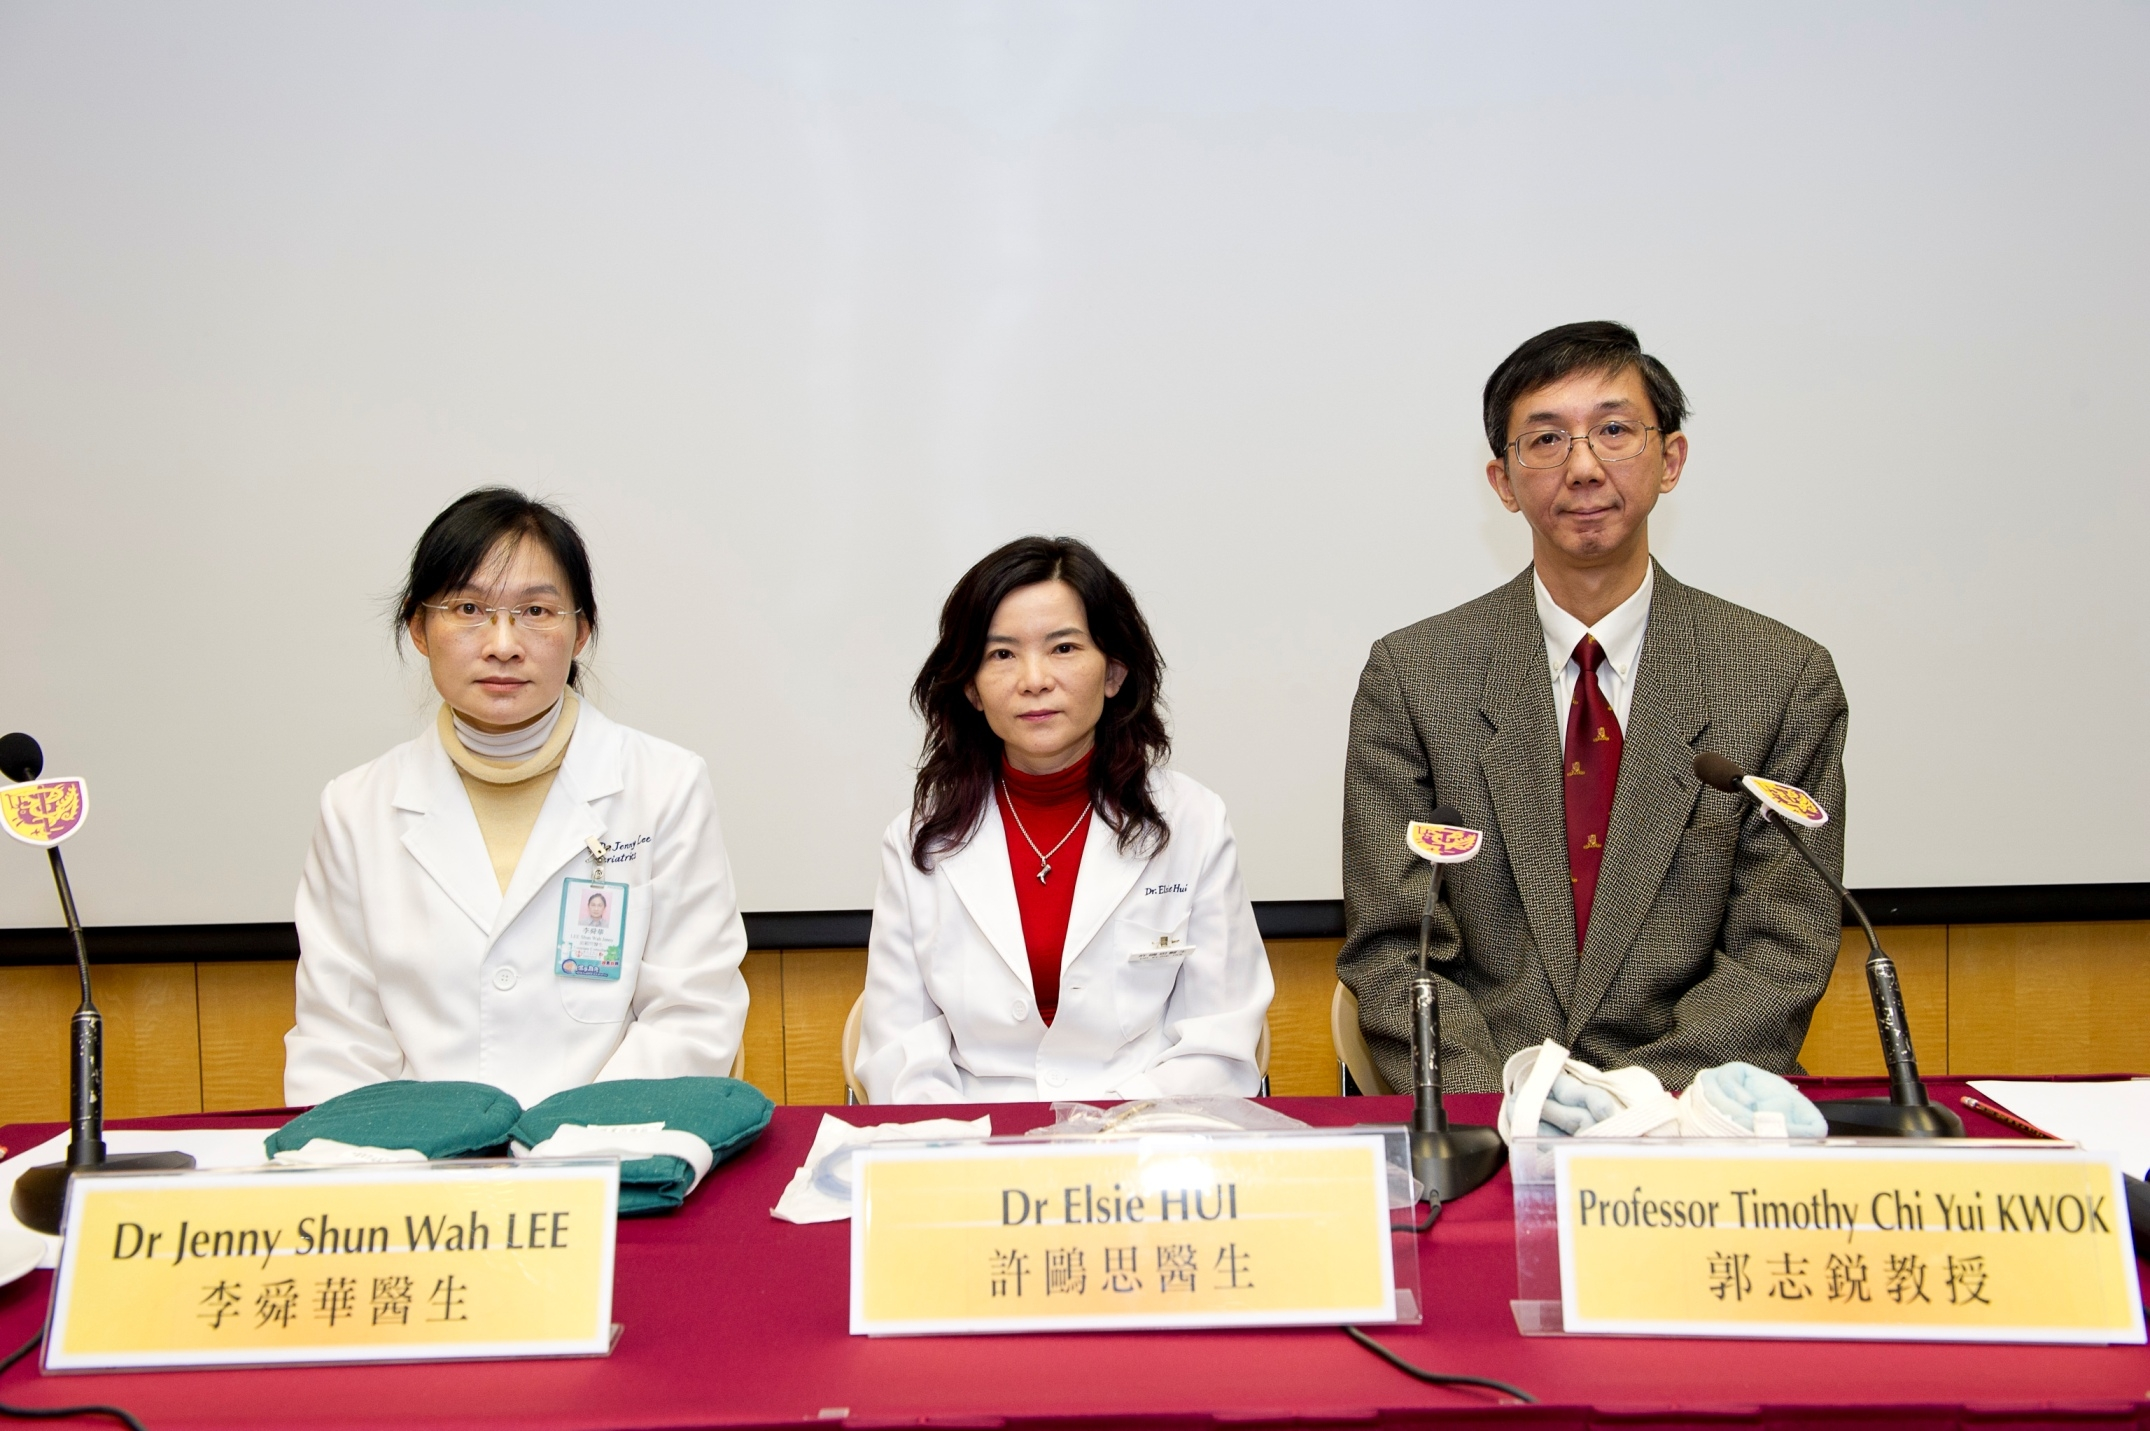 (From Left) Dr Jenny Shun Wah LEE and Dr Elsie HUI, Associate Consultant and Chief of Service, Department of Medicine and Geriatrics, Shatin Hospital, respectively; and Professor Timothy Chi Yui KWOK, Professor, Division of Geriatrics, Department of Medicine and Therapeutics, CUHK